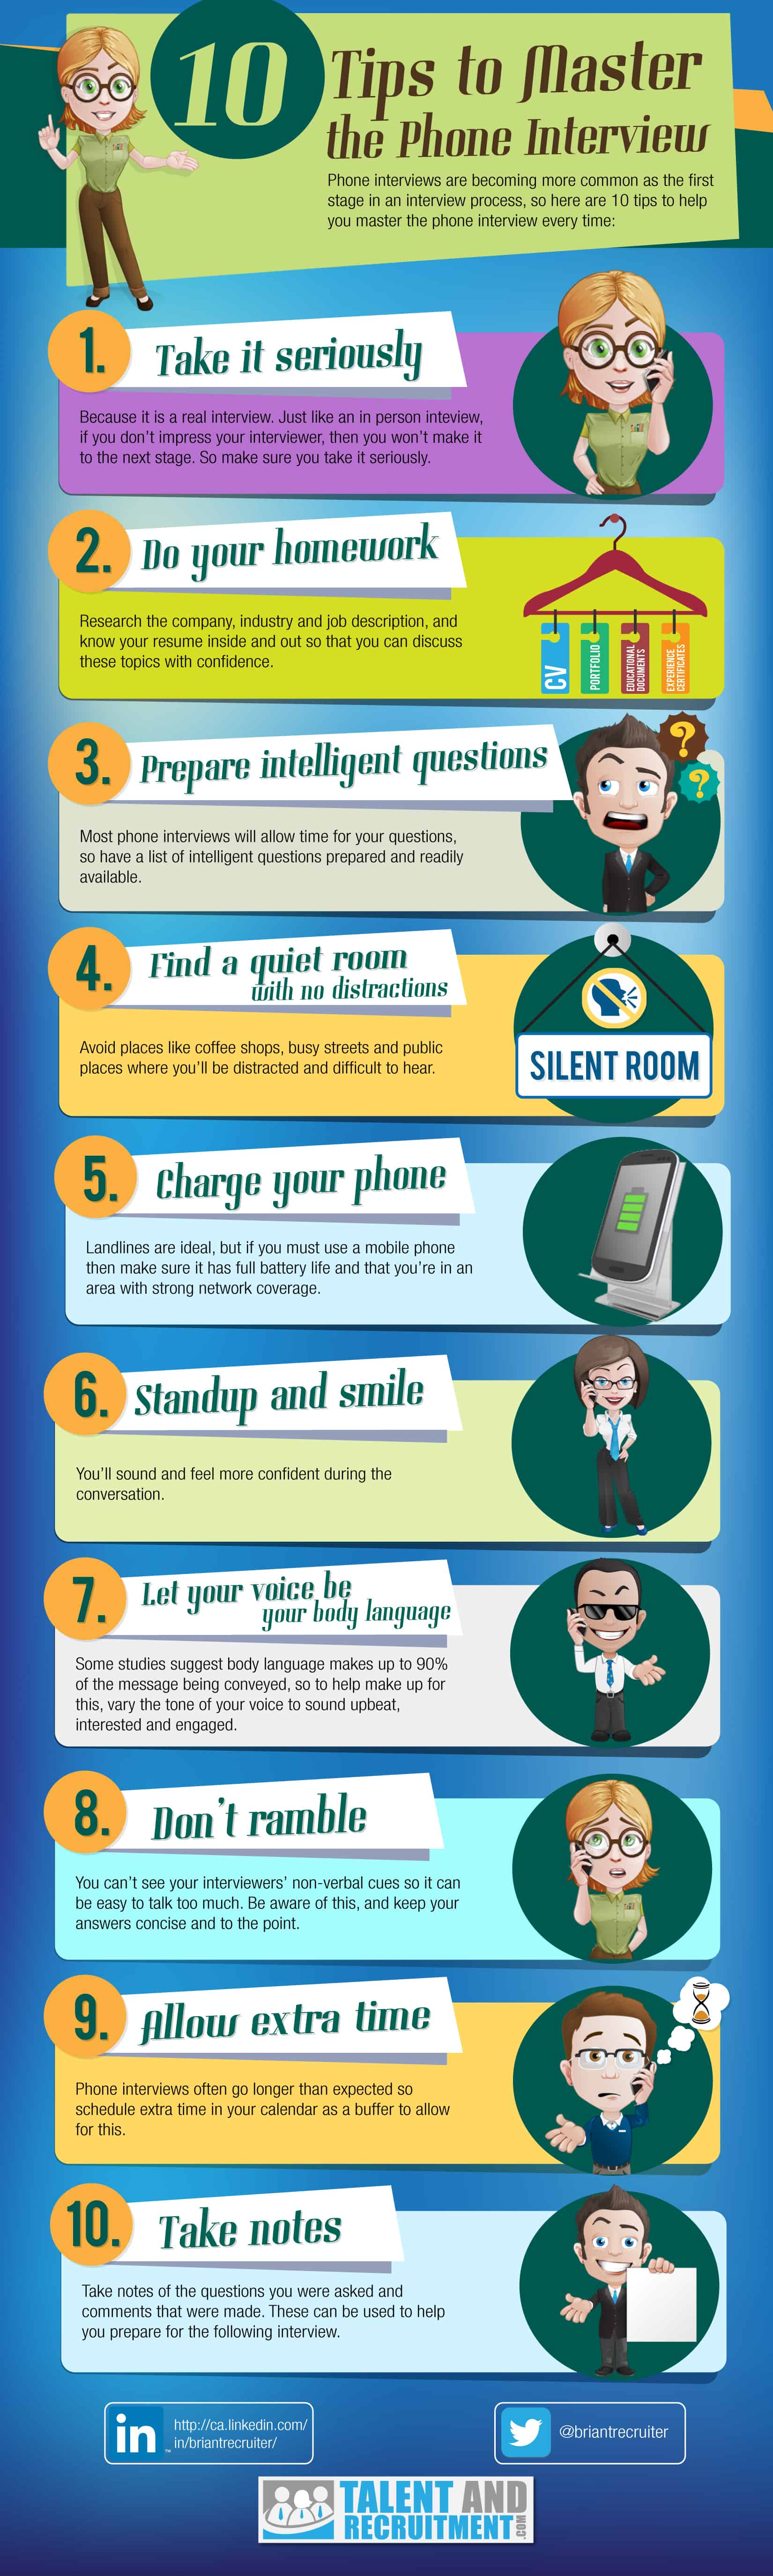 10 Tips To Master The Phone Interview [infographic] | Daily ...